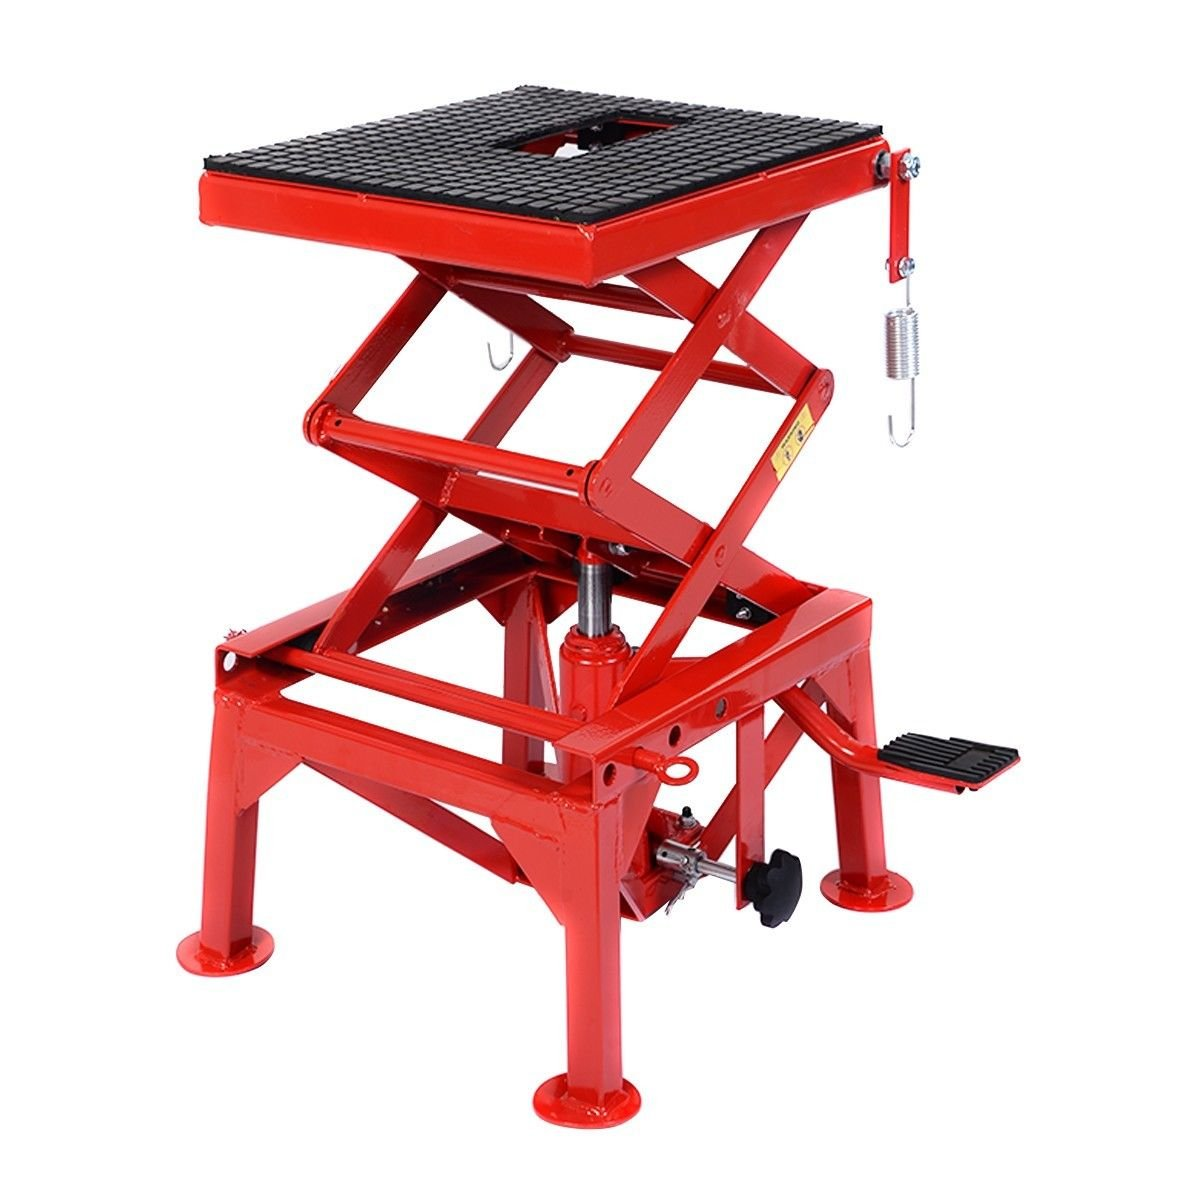 COLIBROX--New 300lb Motorcycle Hydraulic Scissor Floor Jack Lift Hoist Center Stand Lift Max.Capacity:300LBS Max Height 970 Mm Min Height 380 Mm Lift Table Size 360x450mm